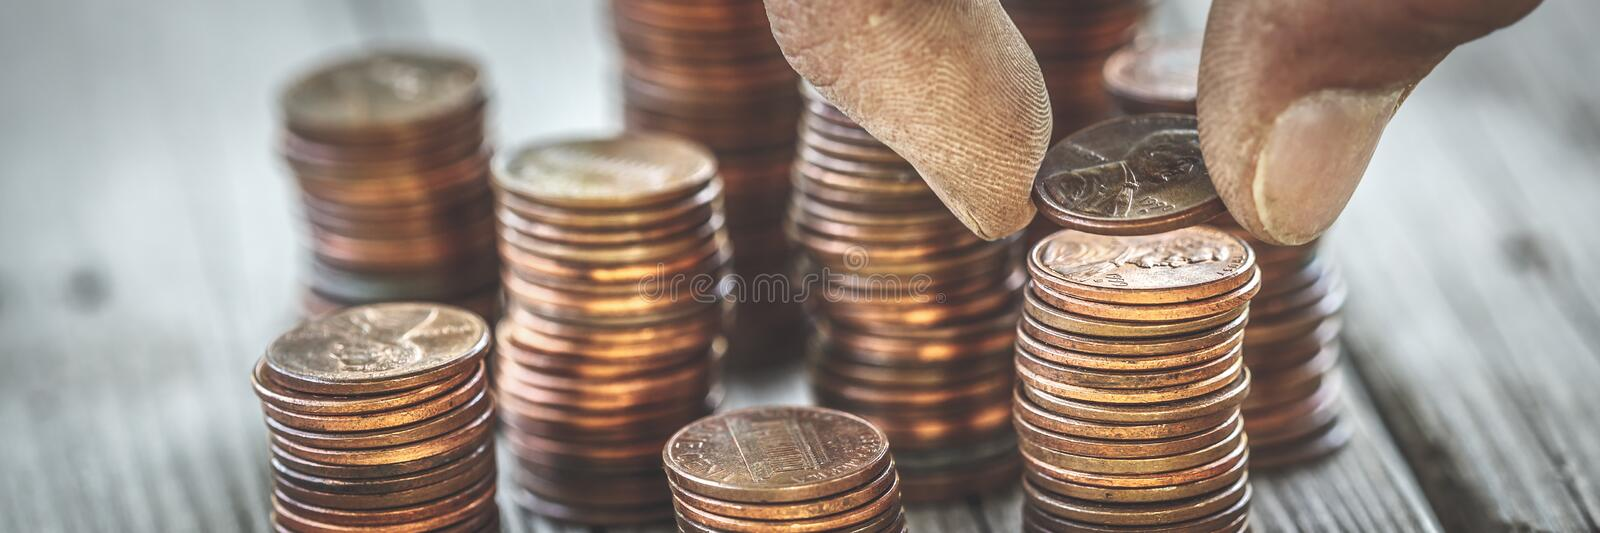 Dirty Hand Counting Coins stock image